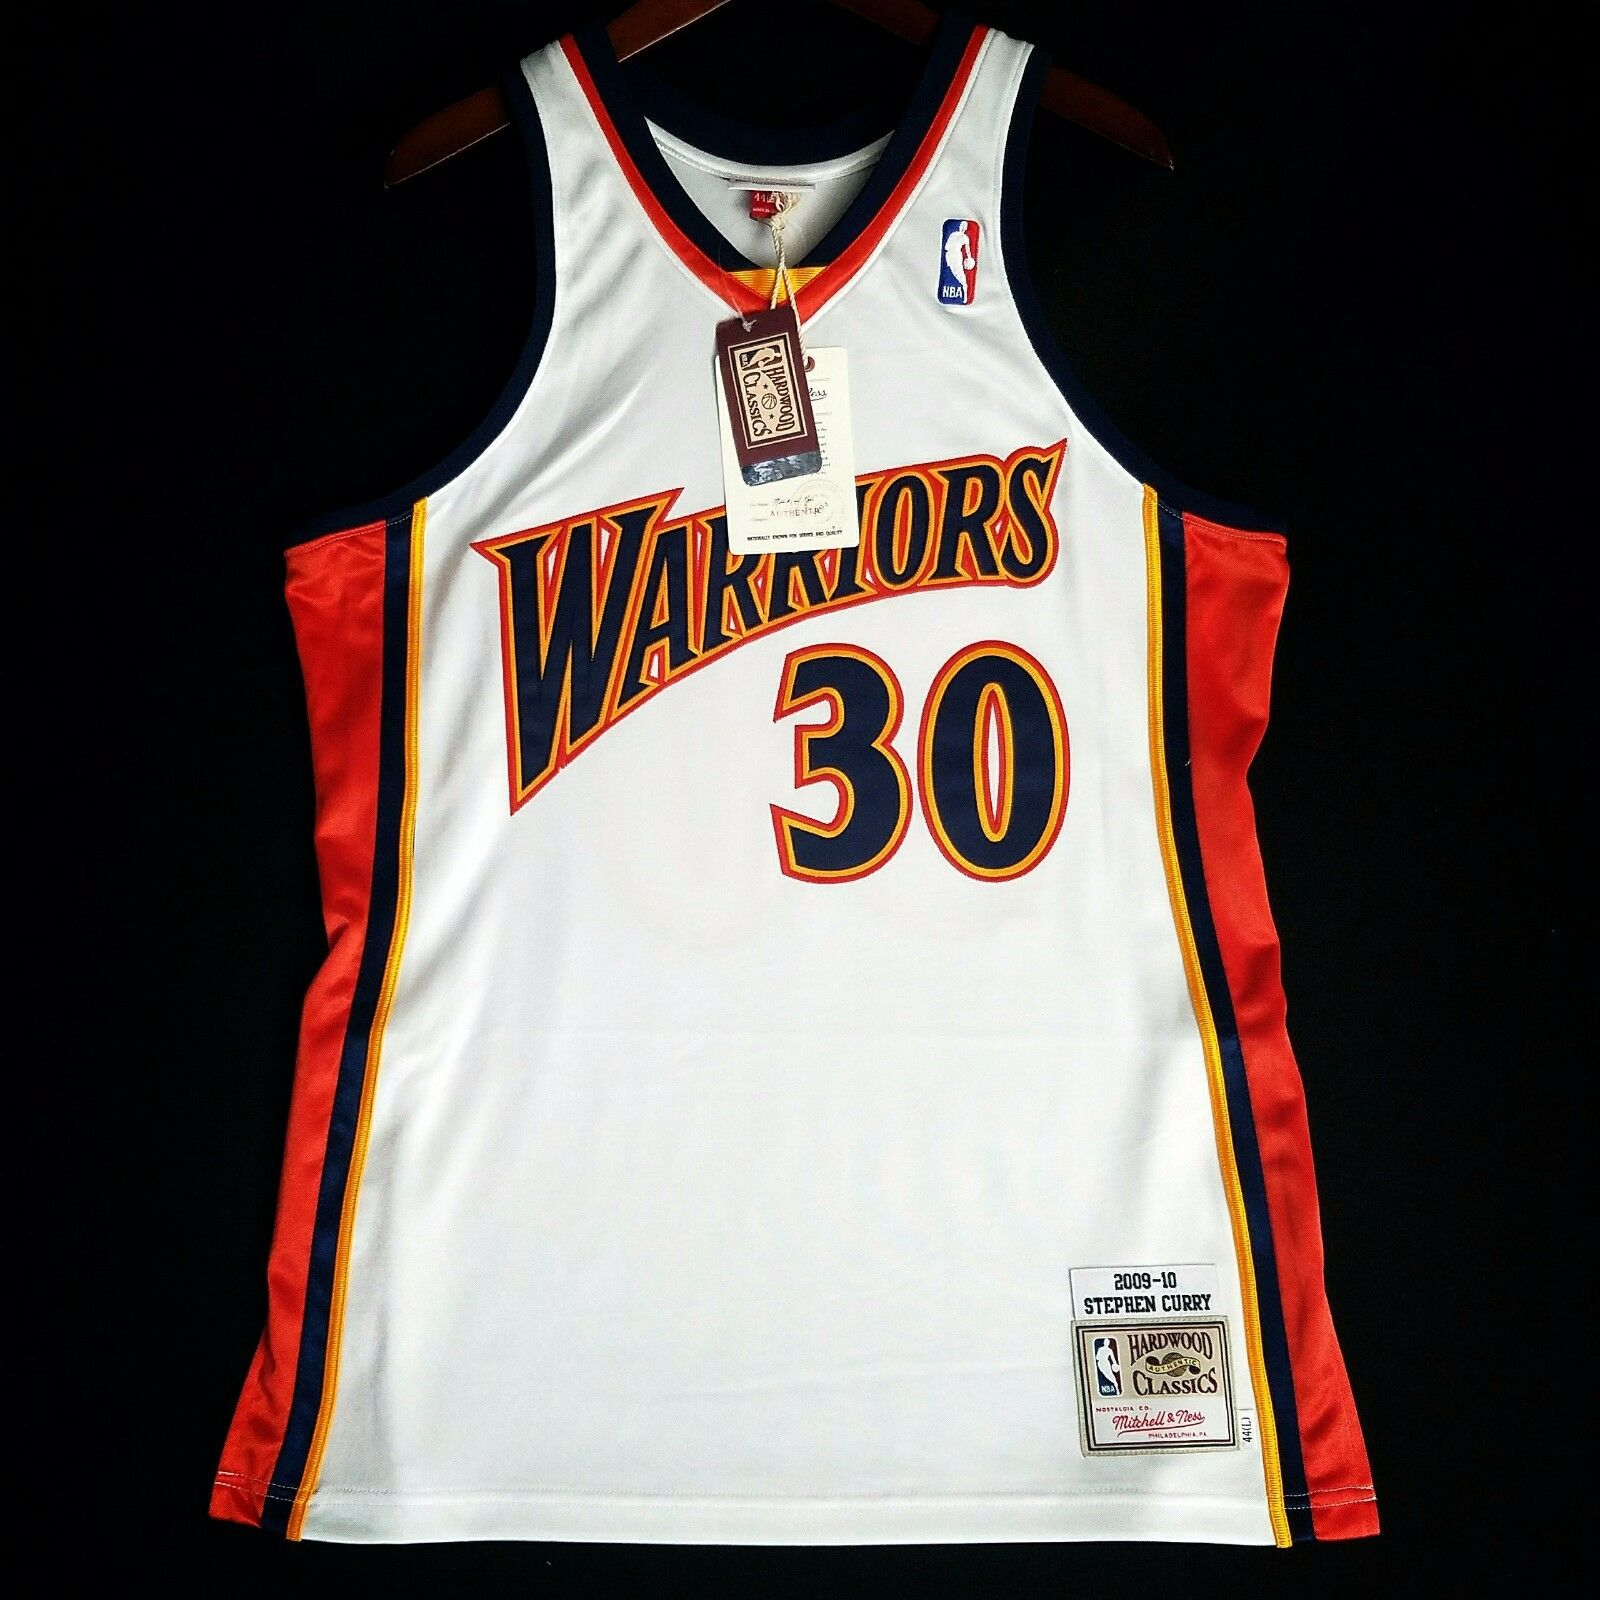 100% Authentisch Stephen Curry Mitchell Ness Ness Ness 09-10 Warriors Trikot Größe 36 S S  | Hat einen langen Ruf